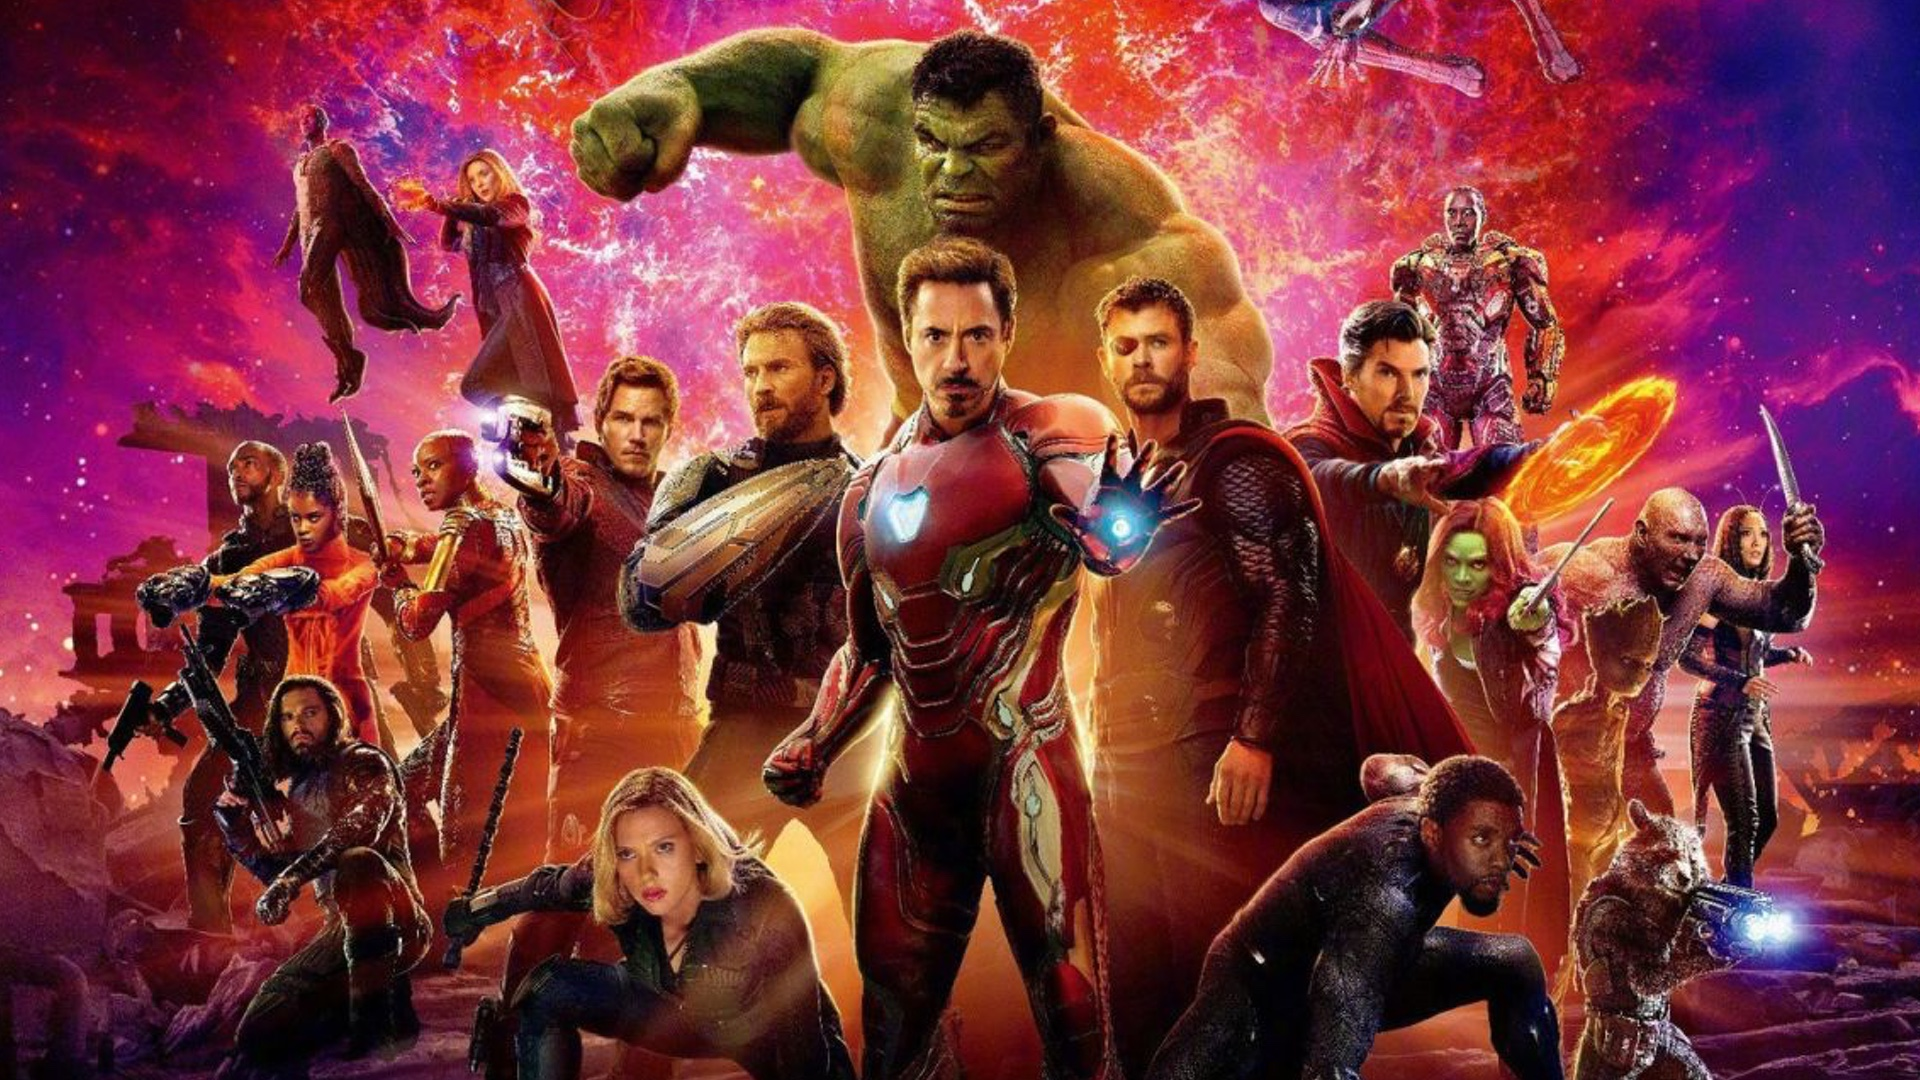 Avengers Infinity War, Black Panther, Mission: Impossible